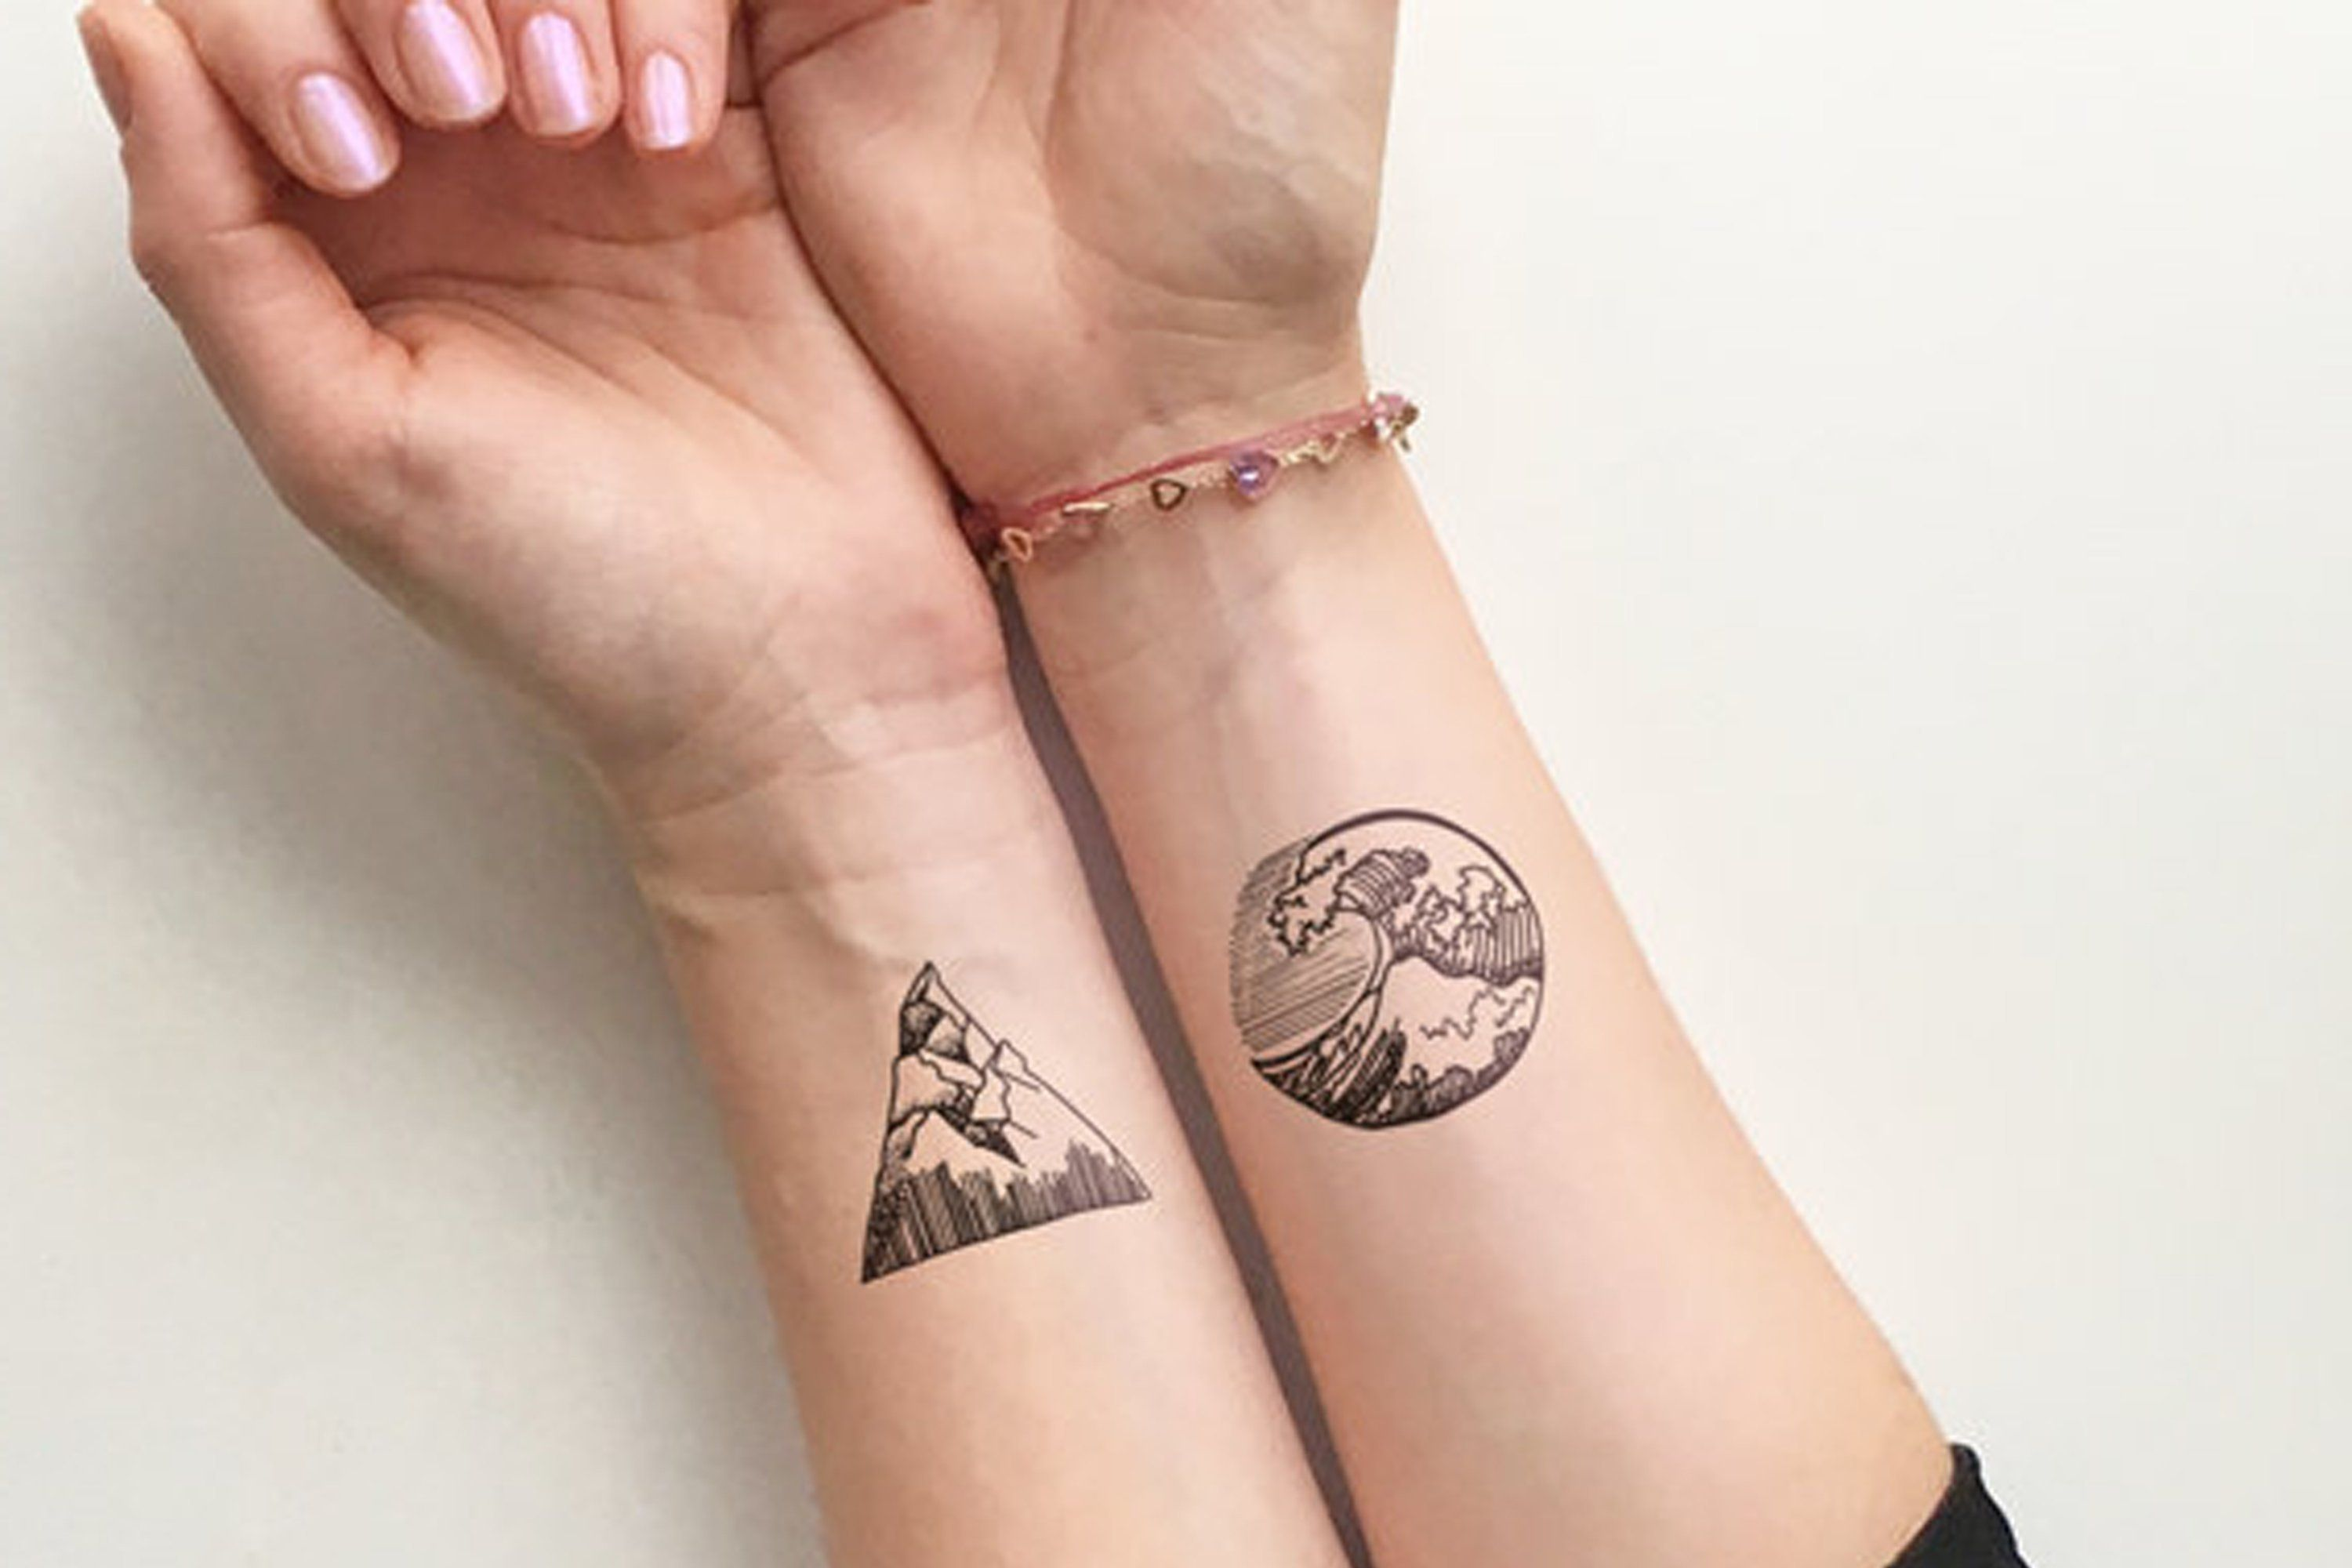 6a0005a18 Solstice Small Geometric Nature Waves & Mountain Temporary Tattoo ...